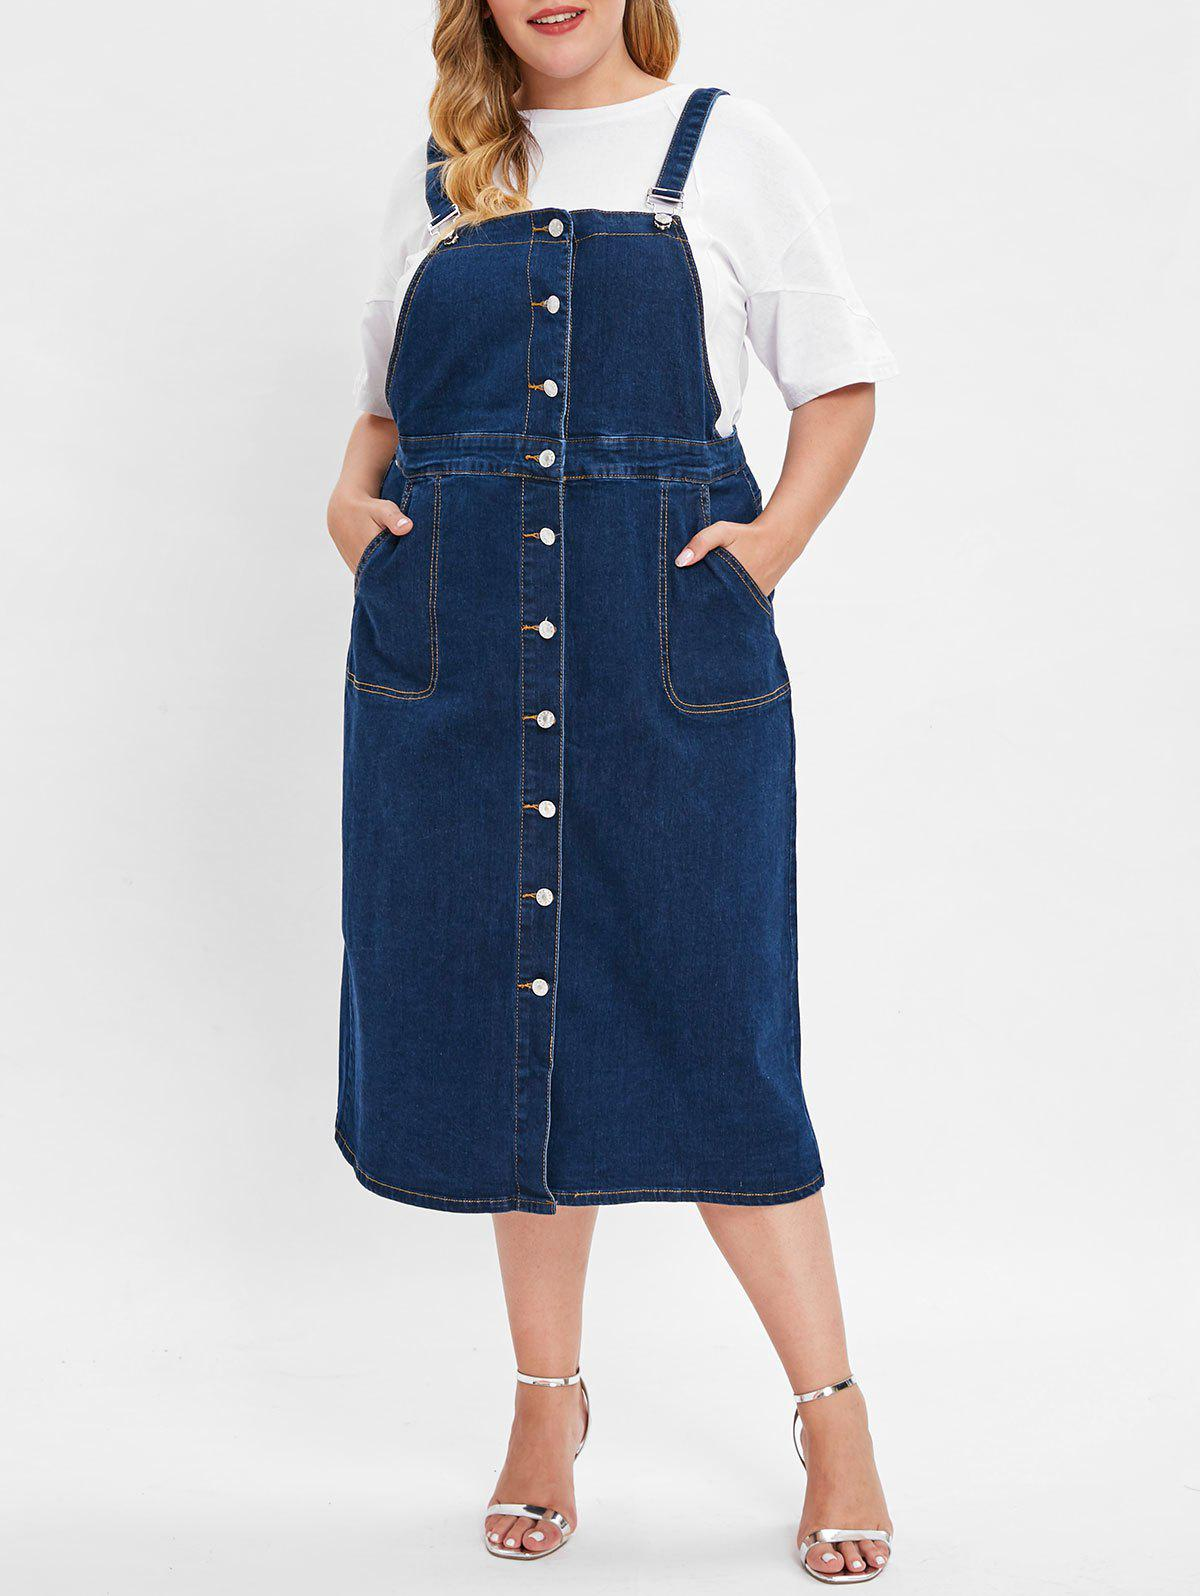 46% OFF] Plus Size Jean Overall Dress | Rosegal